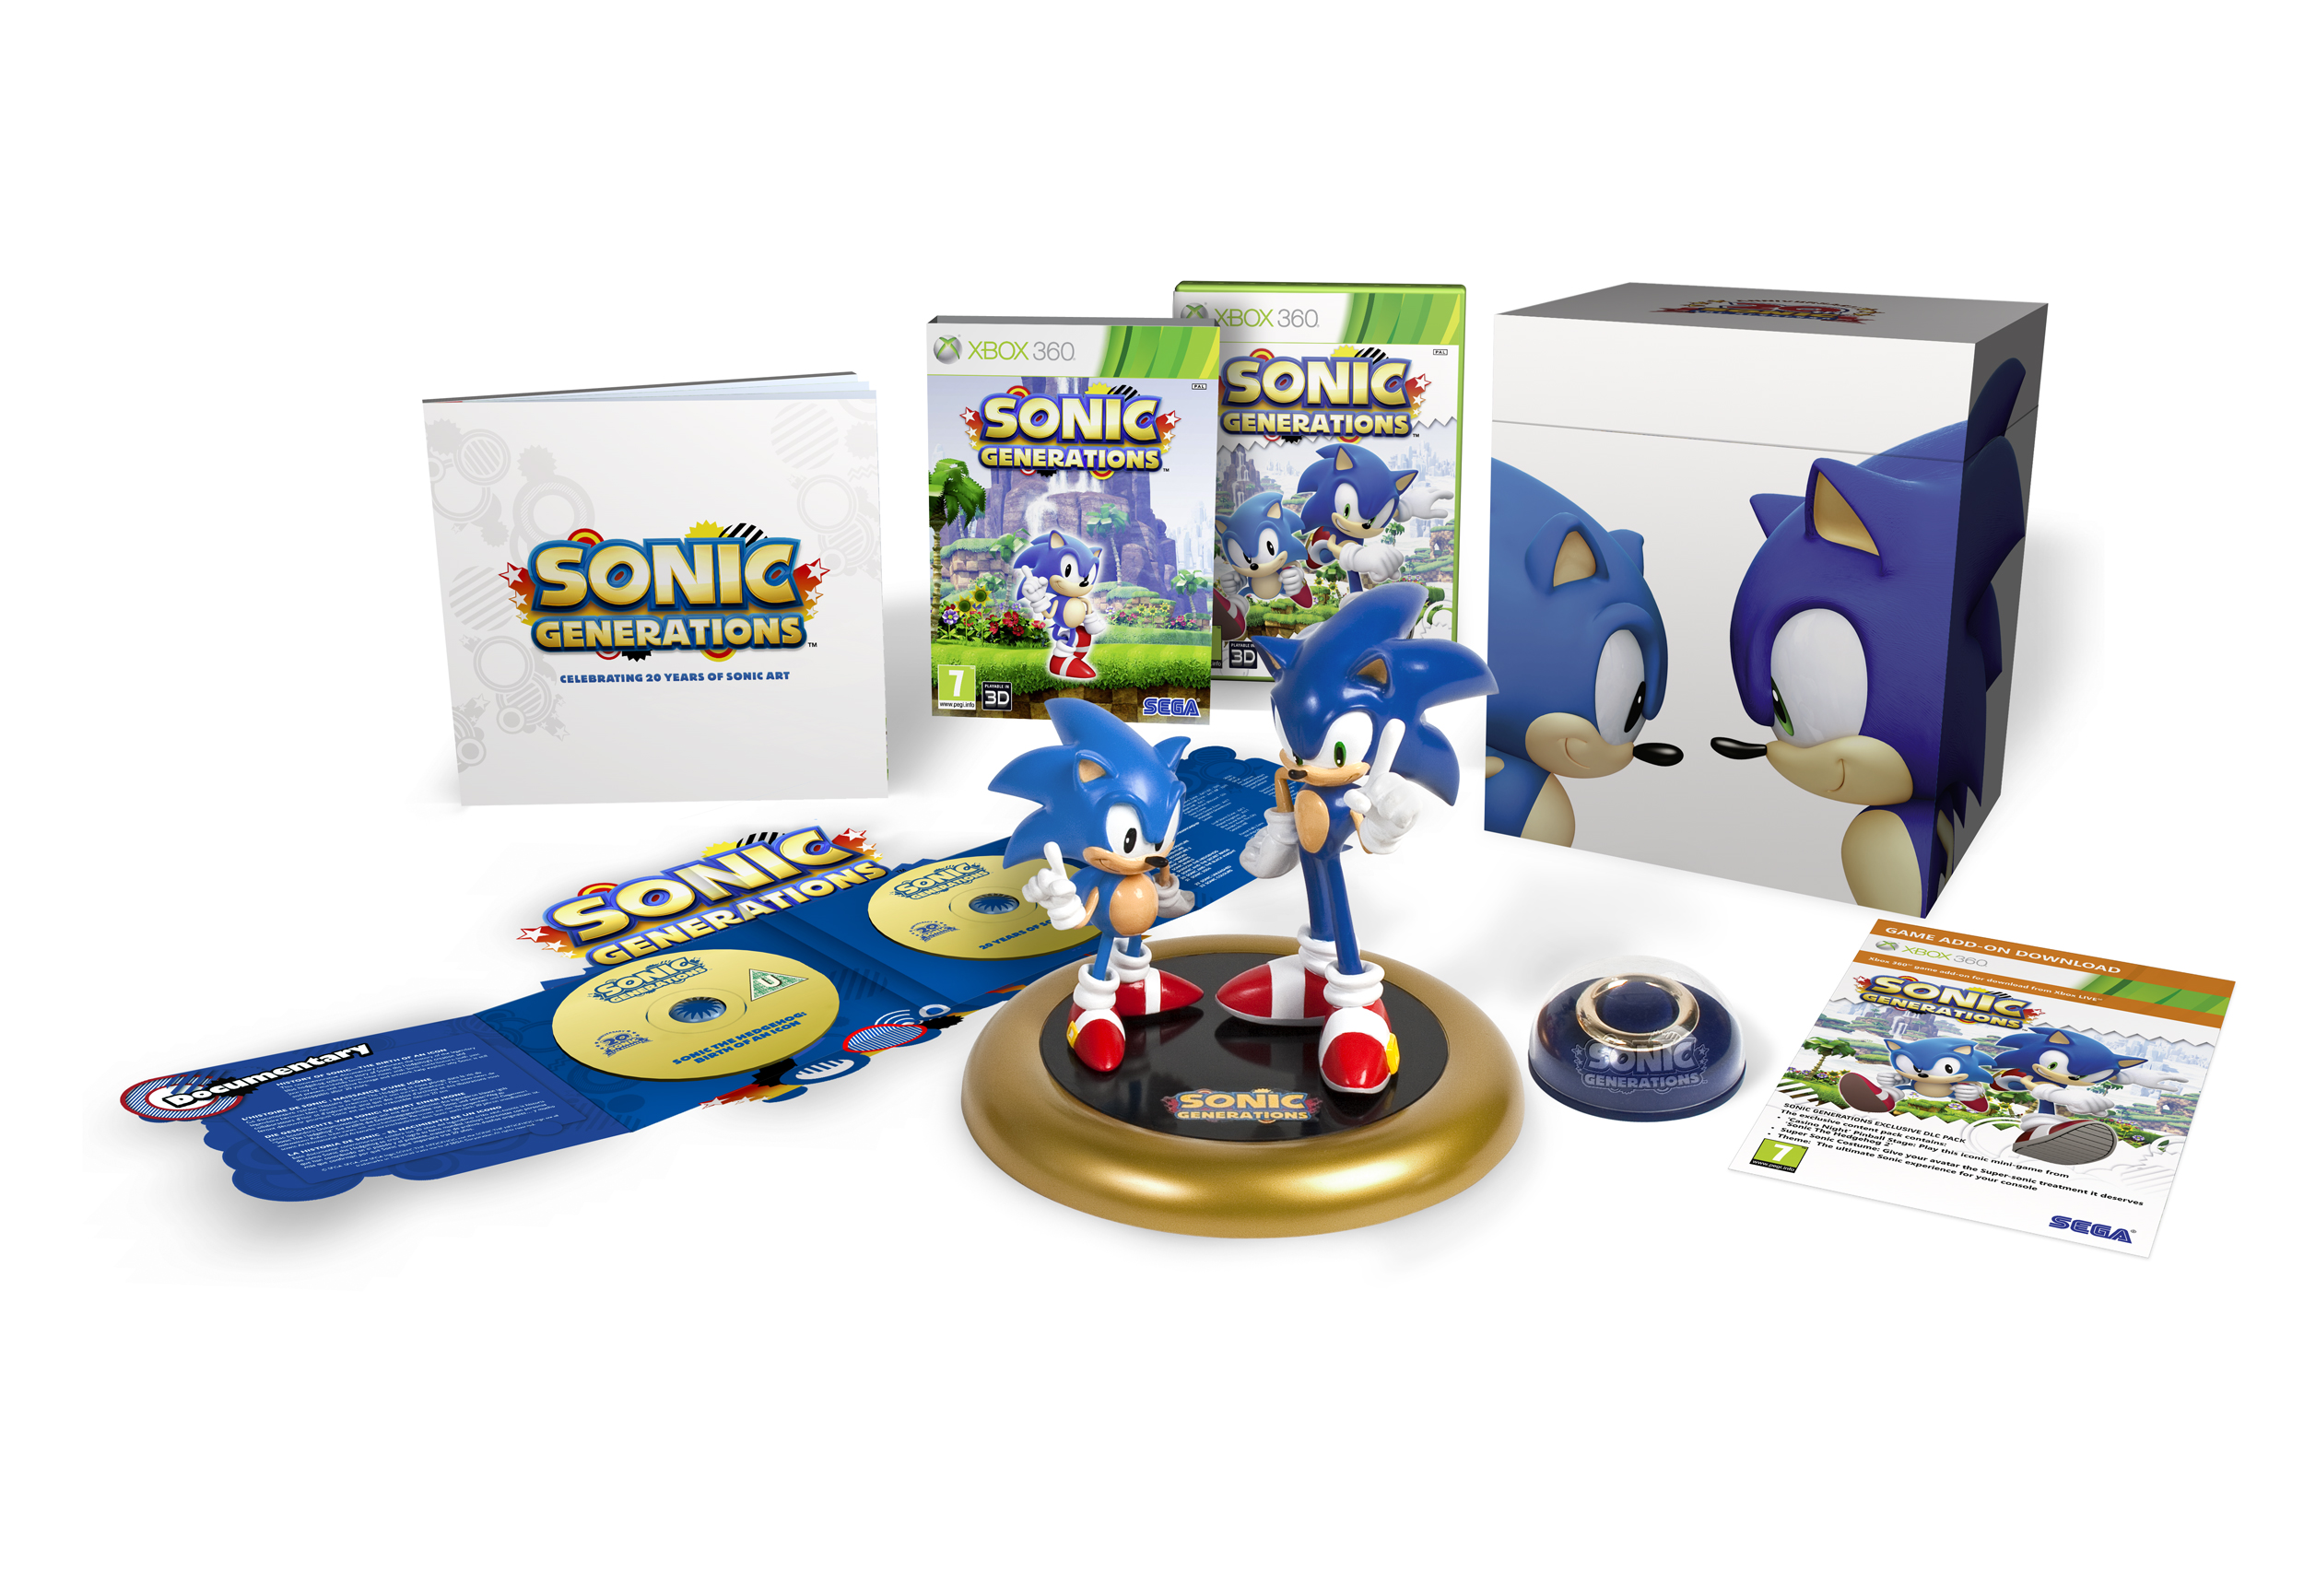 Watch Dreadknux Unbox The Sonic Generations Collector's Edition